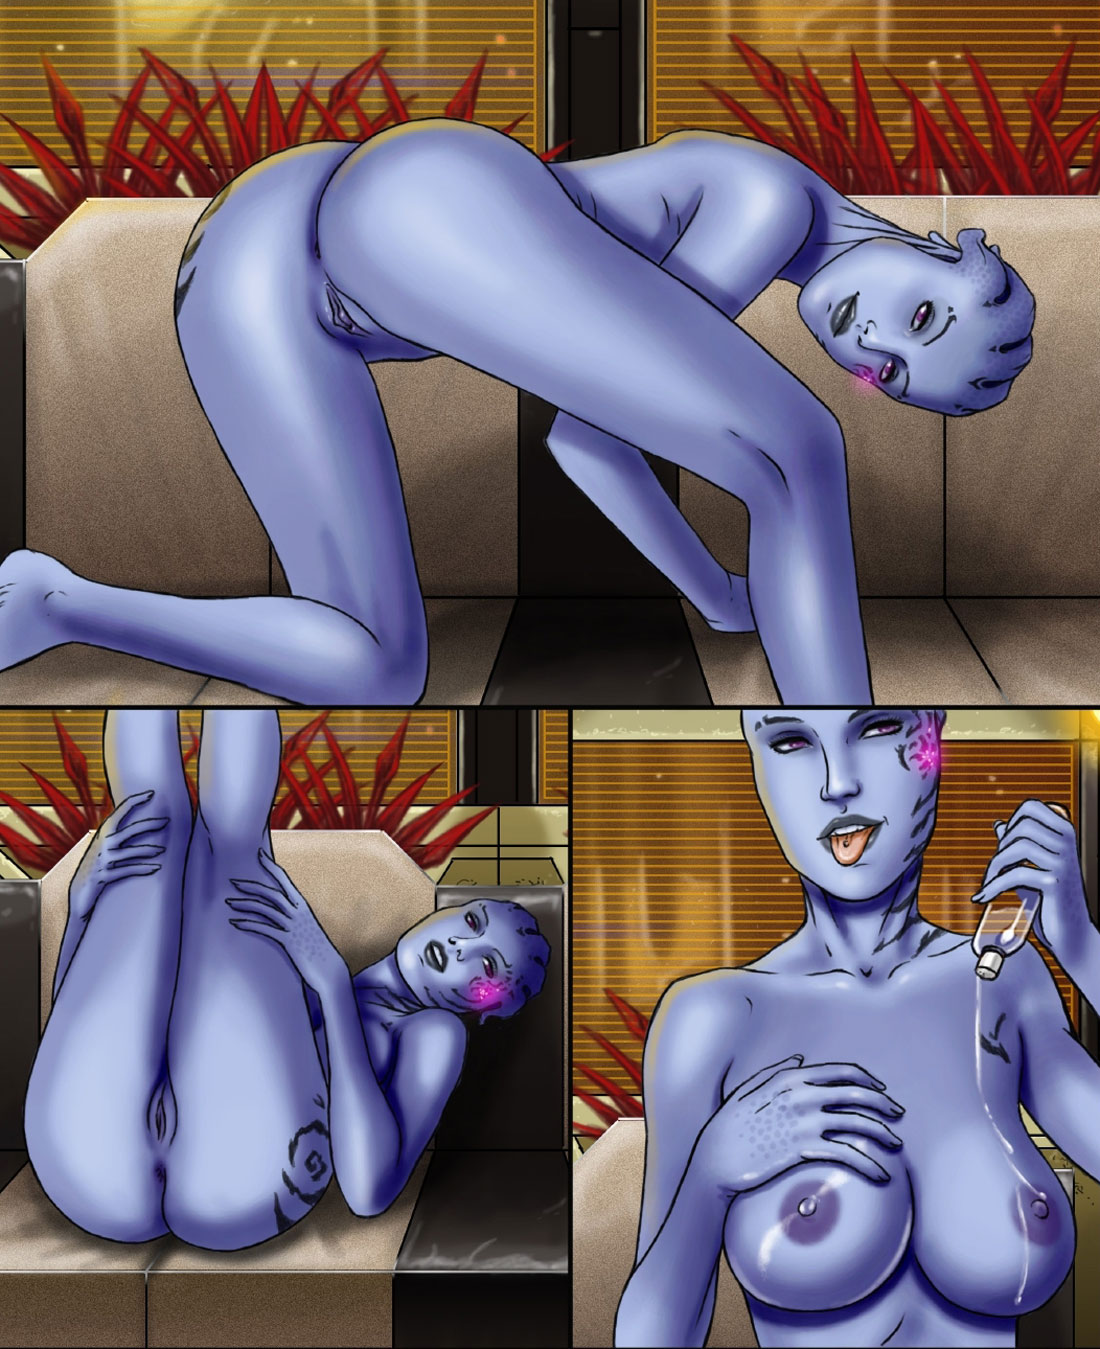 Mass effect sex hentai pic sex scene